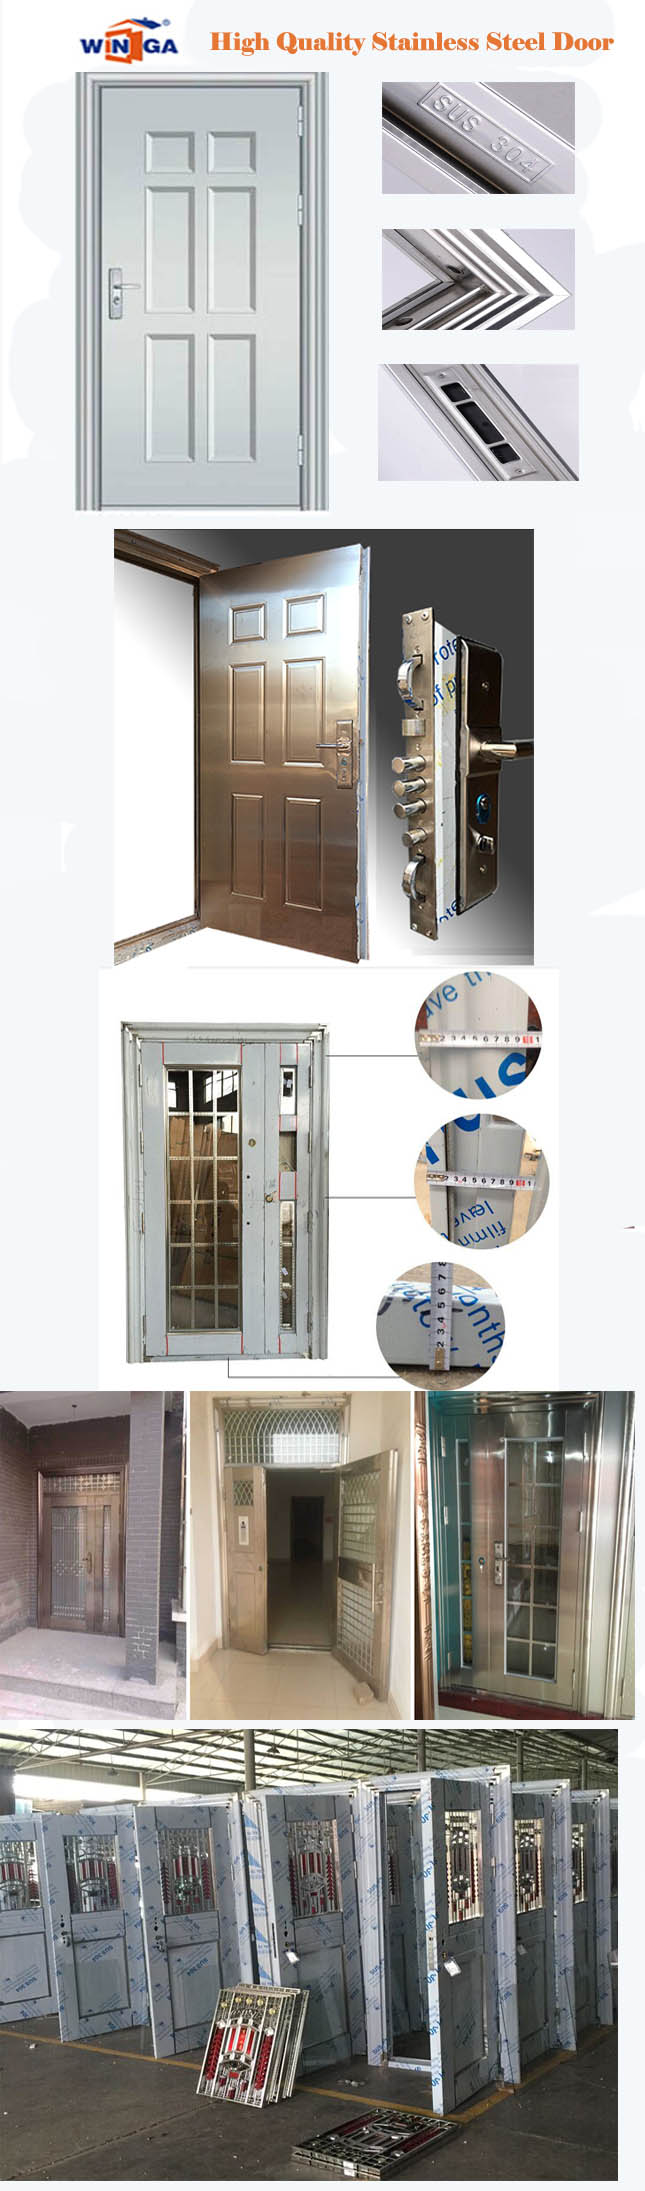 Middle East Market Popular Outside Stainless Steel Security Door (W-GH-15)